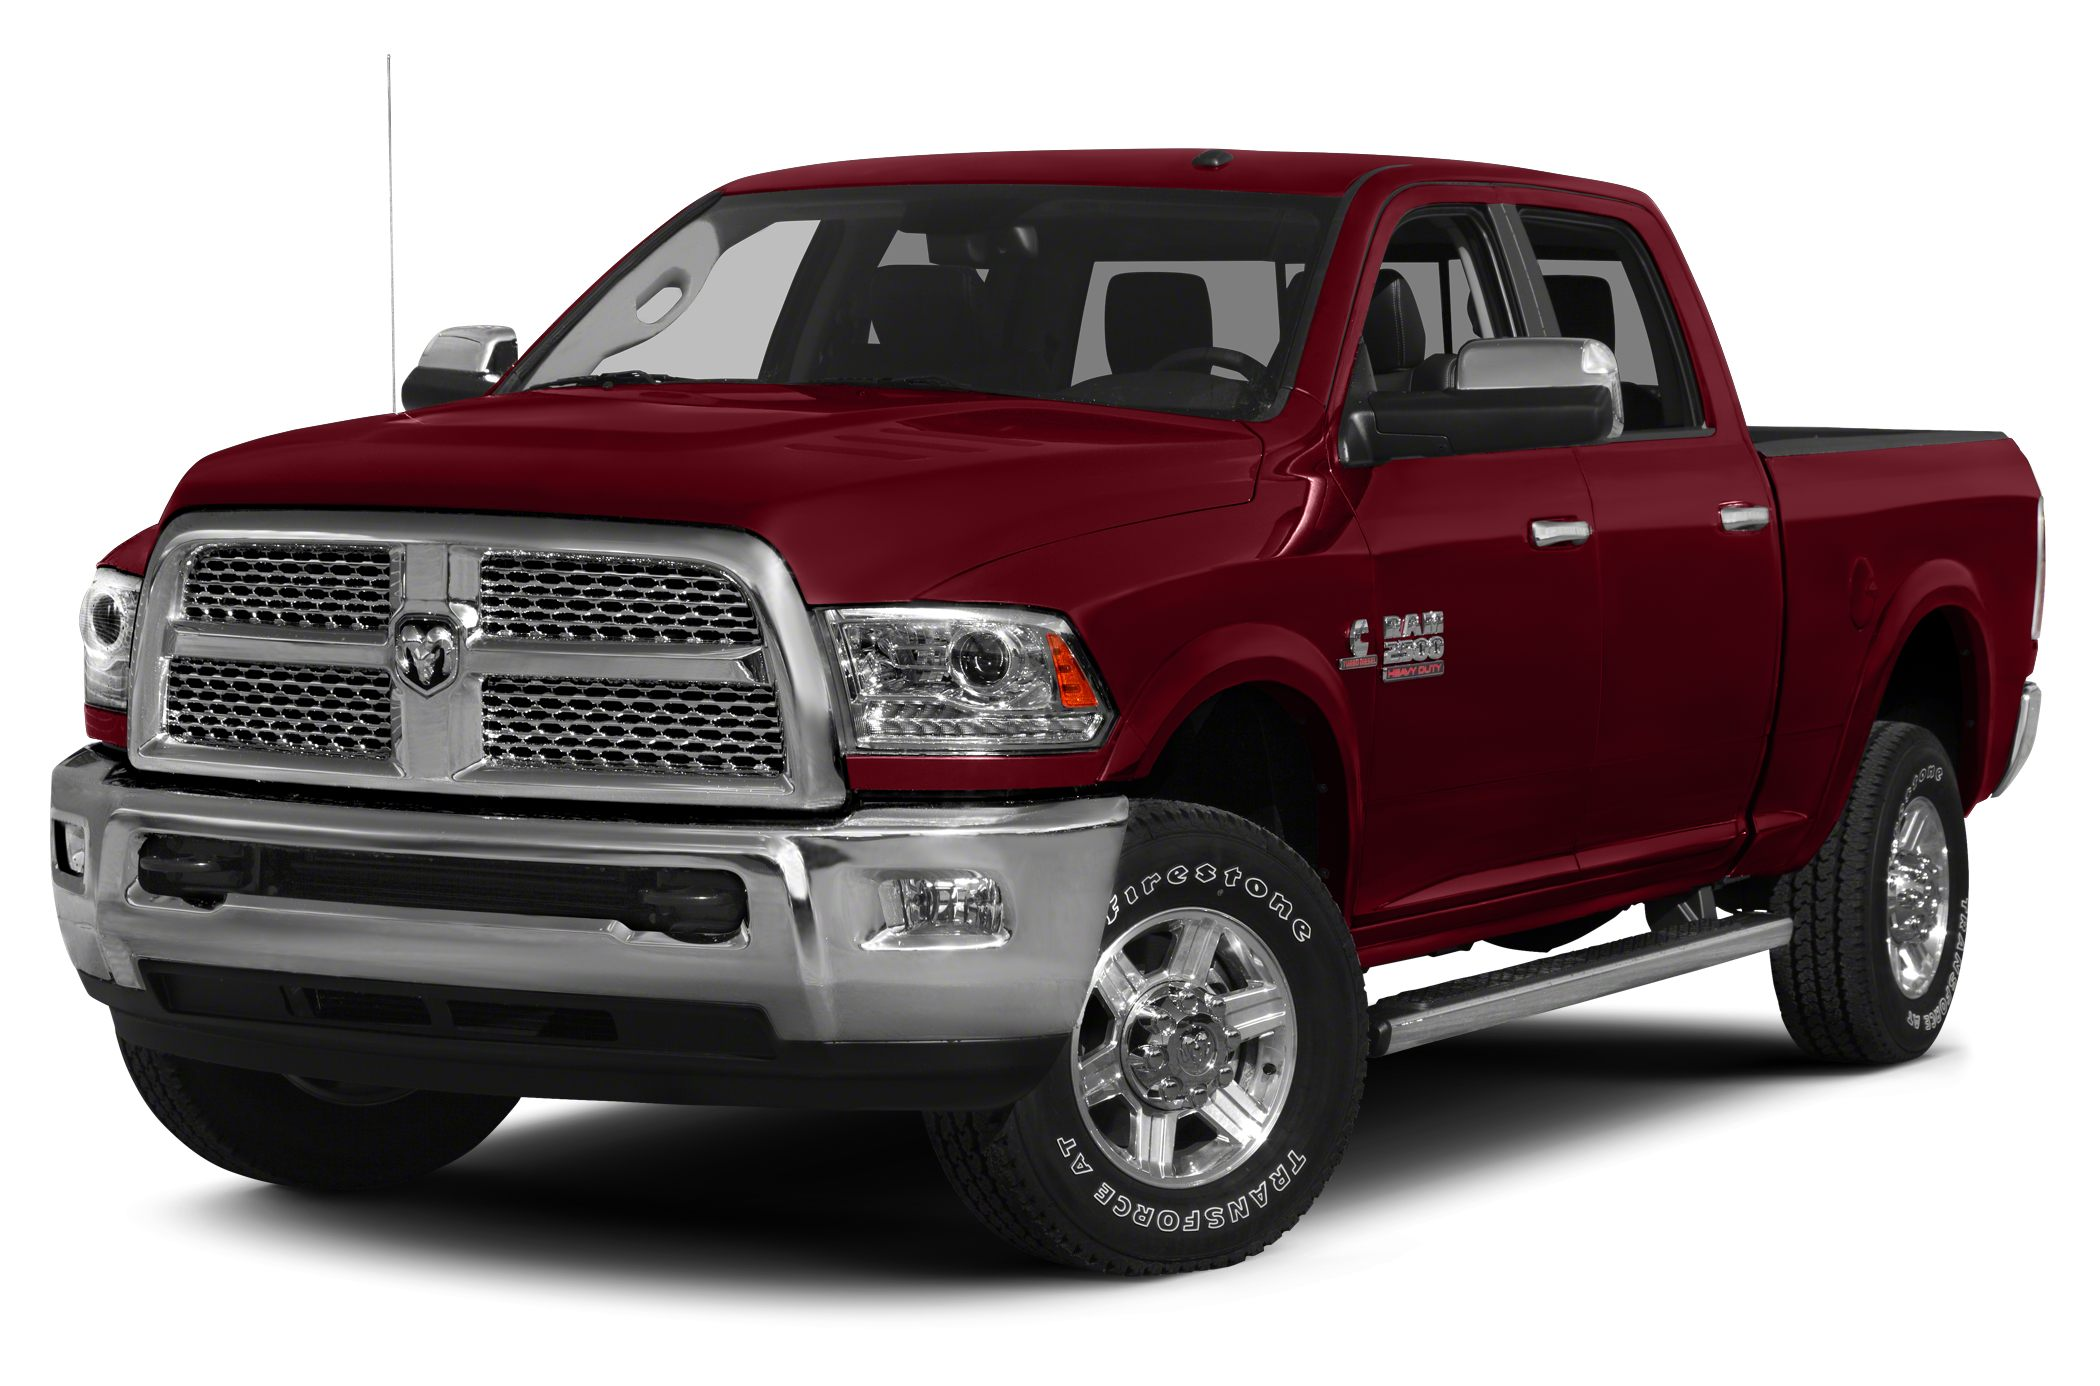 2015 RAM 2500 Tradesman Crew Cab Pickup for sale in Batesville for $51,315 with 0 miles.